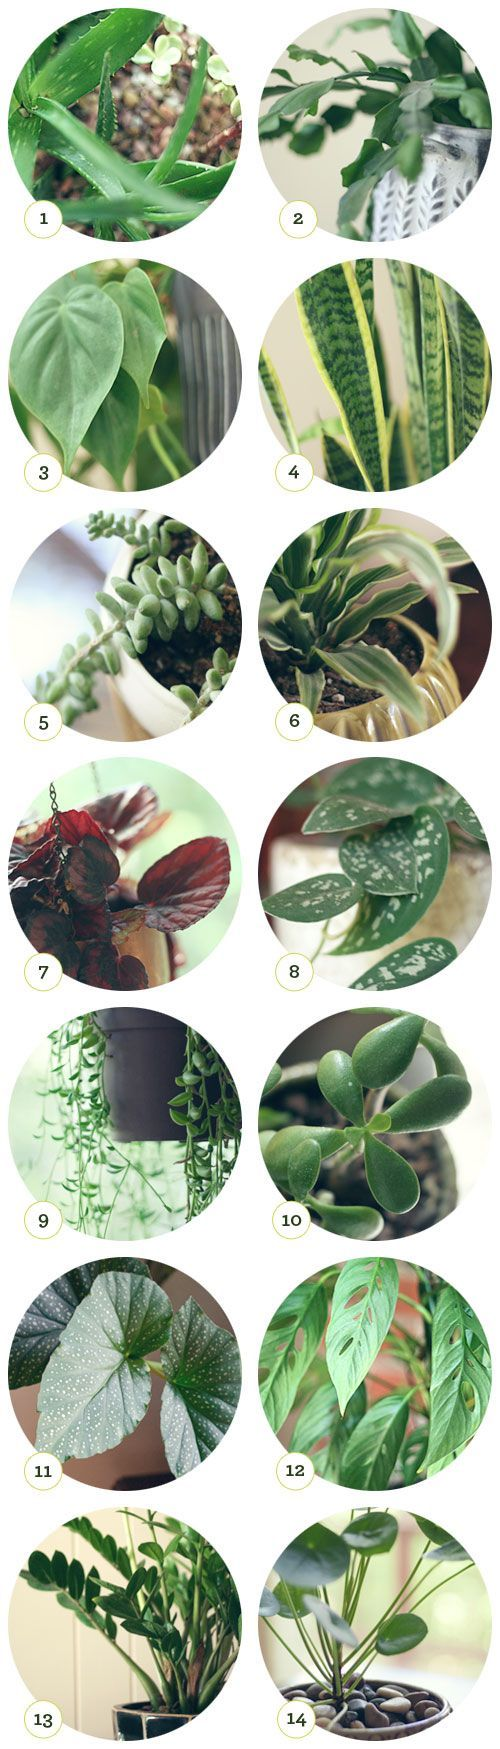 a handy list for house plant identification aloe christmas cactus philodendron snake plant tail plant lemon lime plant begonia silver philodendron string - House Plants Identification Pictures